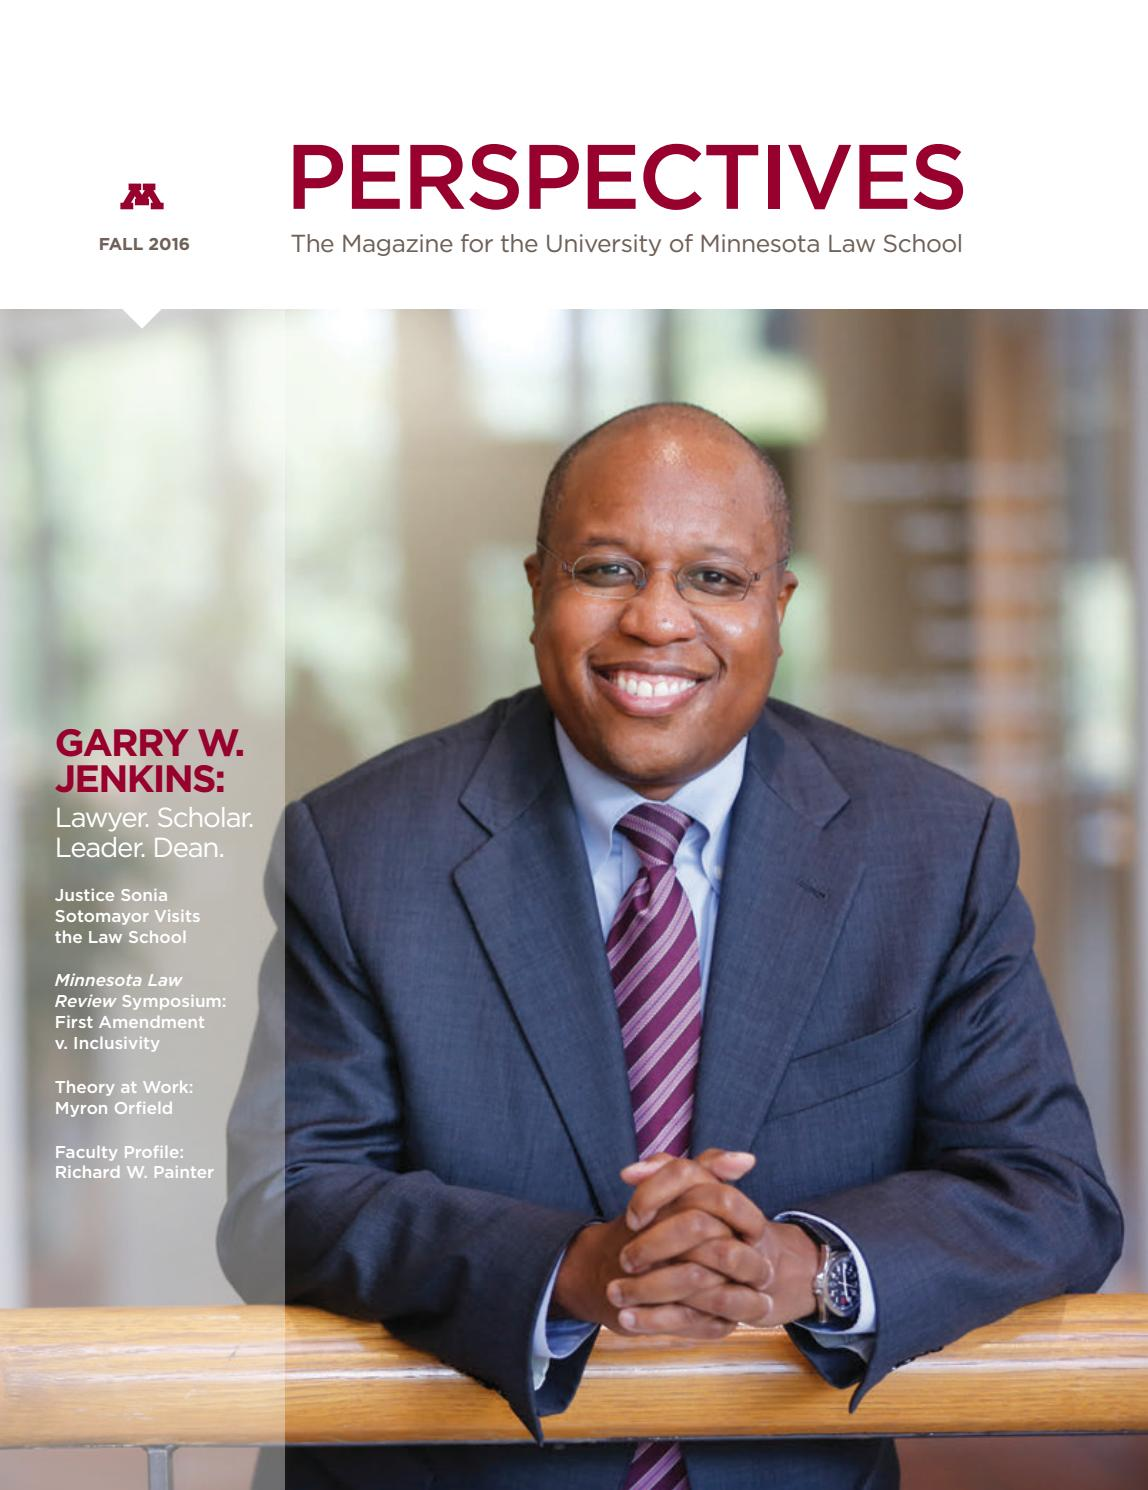 fall 2016 perspectives by university of minnesota law school - issuu